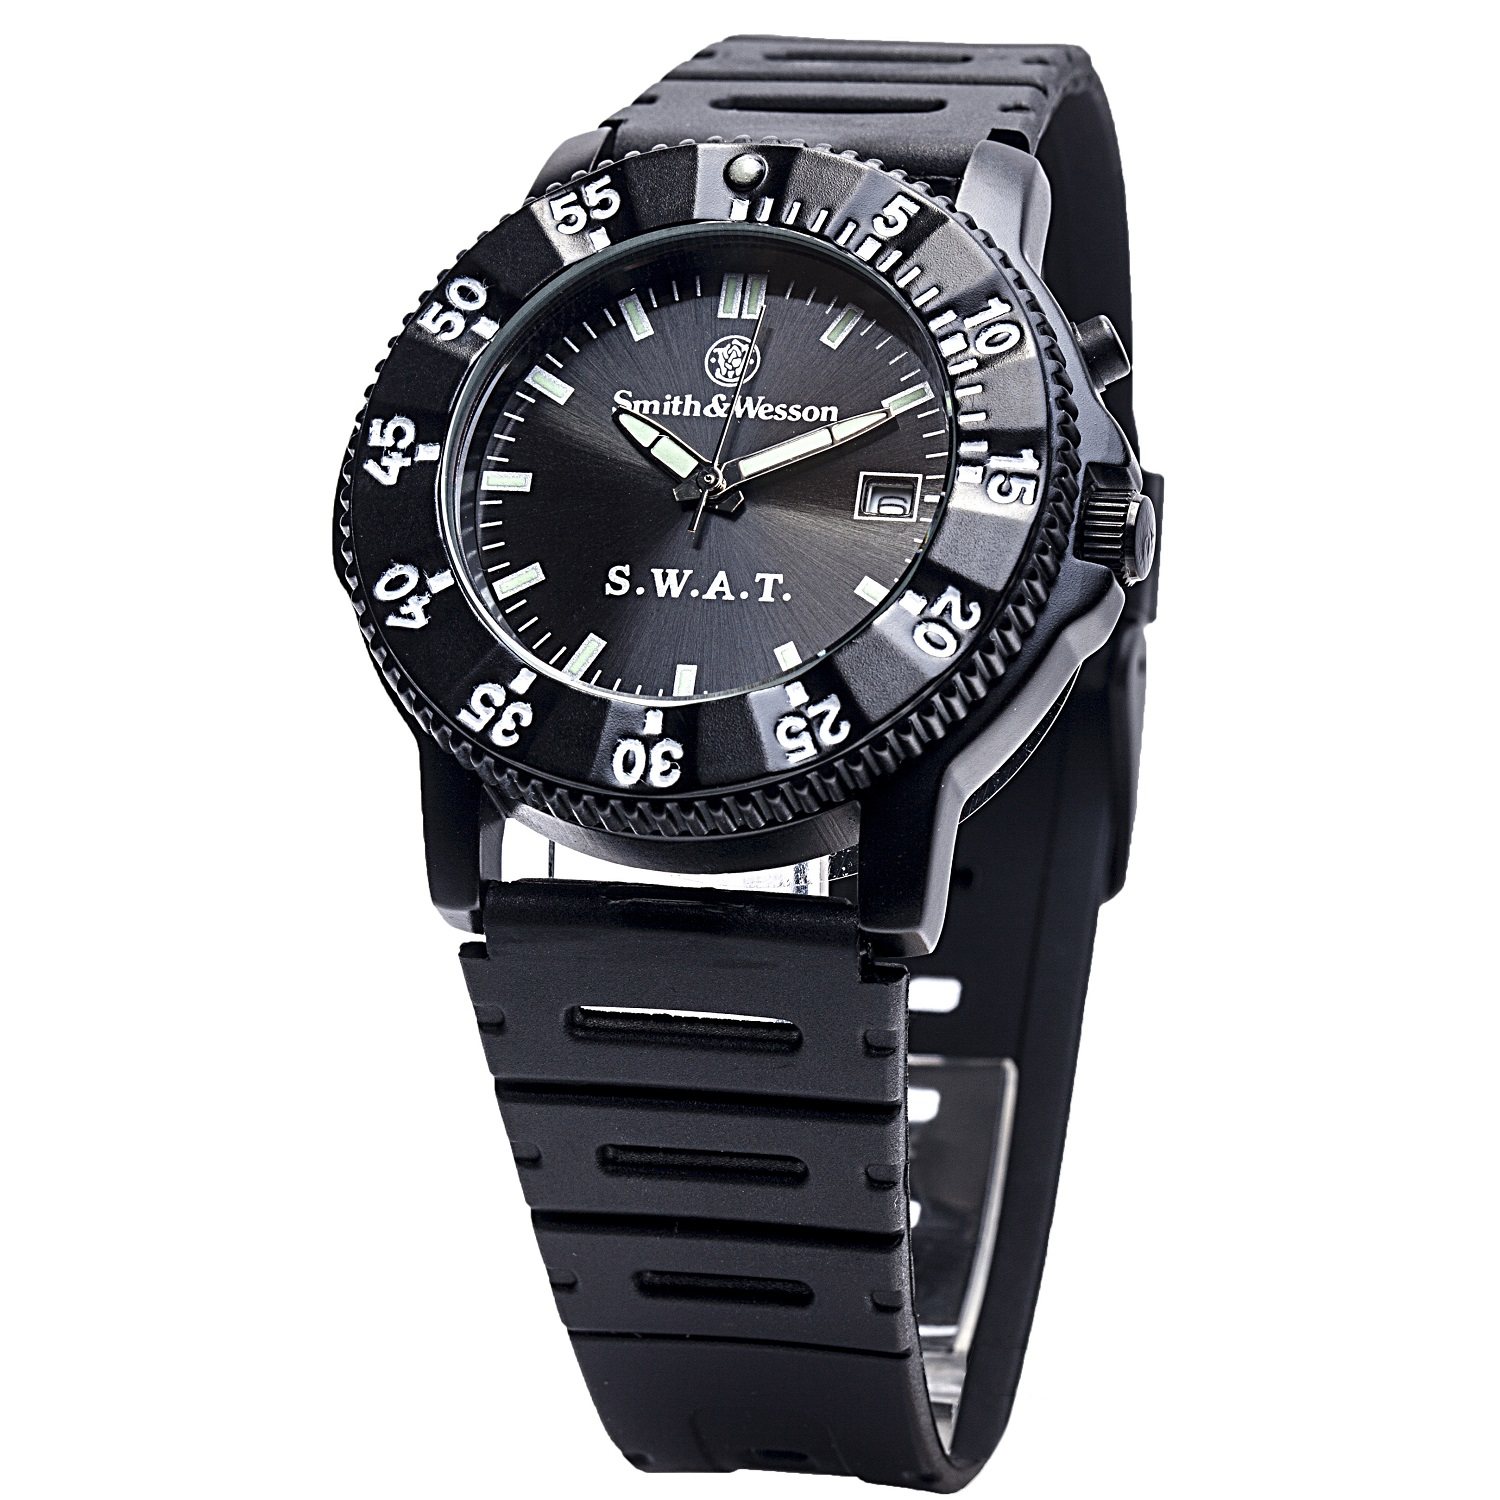 Smith & Wesson Men's SWAT Watch with Black Rubber Strap